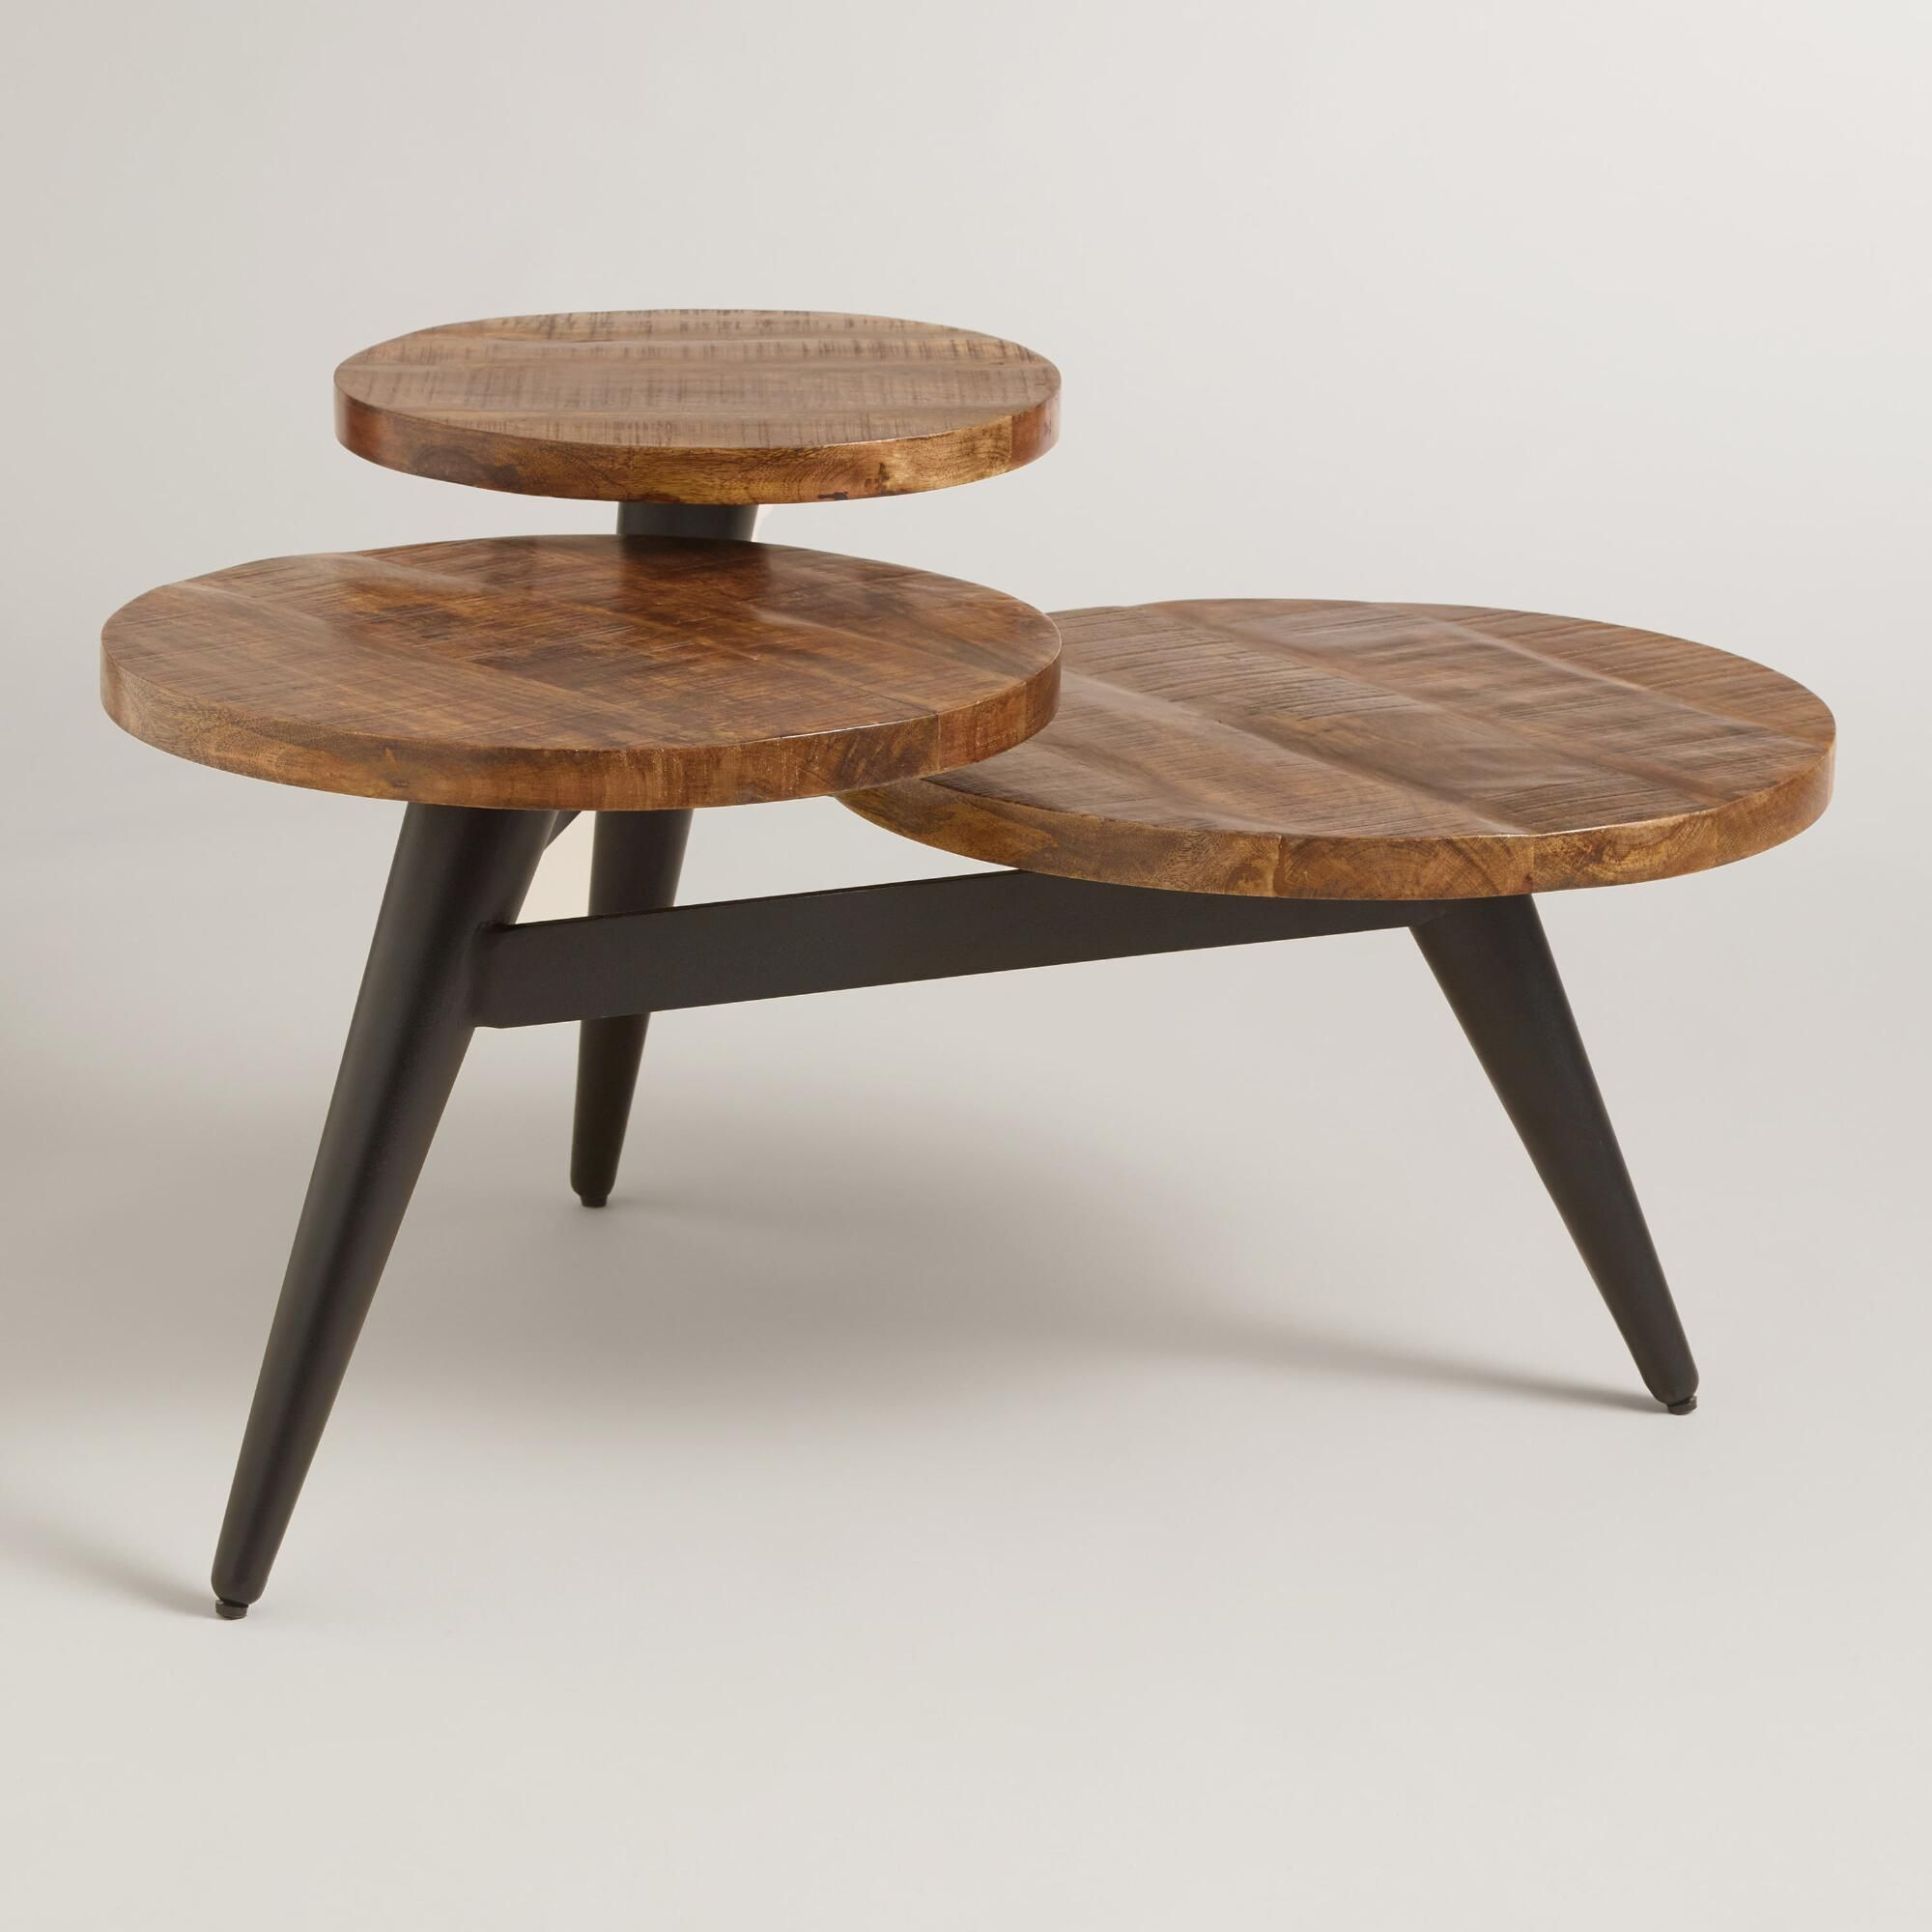 A Standout Statement Piece Our Three Tier Coffee Table Features Unique Black